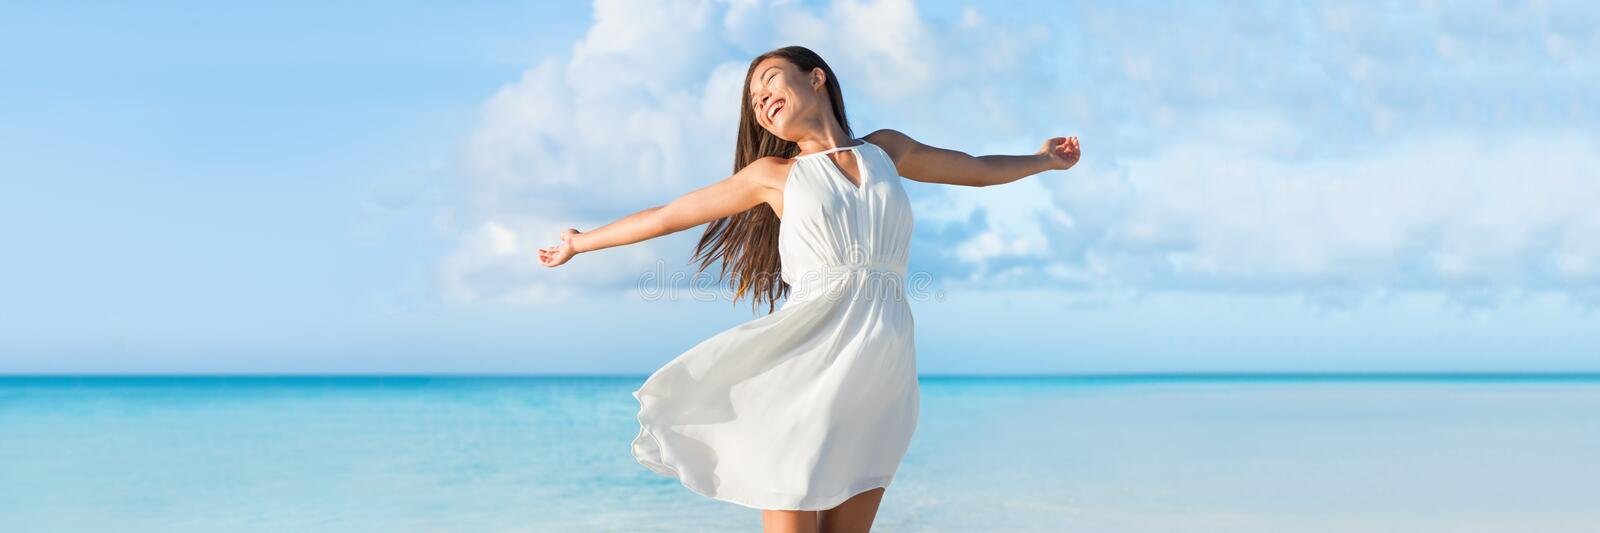 Freedom woman dancing on ocean beach background stock image